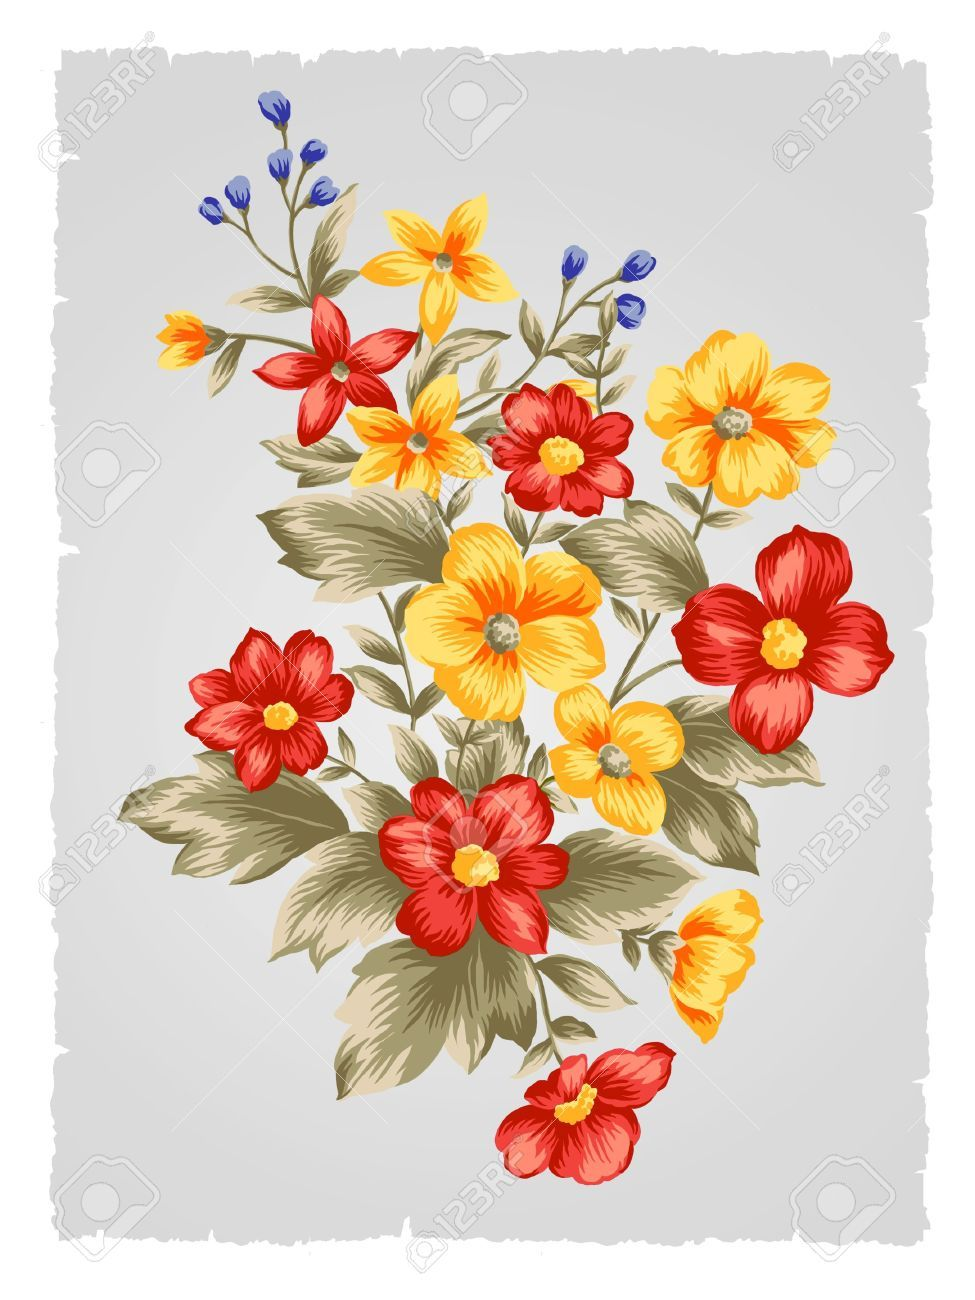 fabric painting flower patterns bunch - Google Search ...